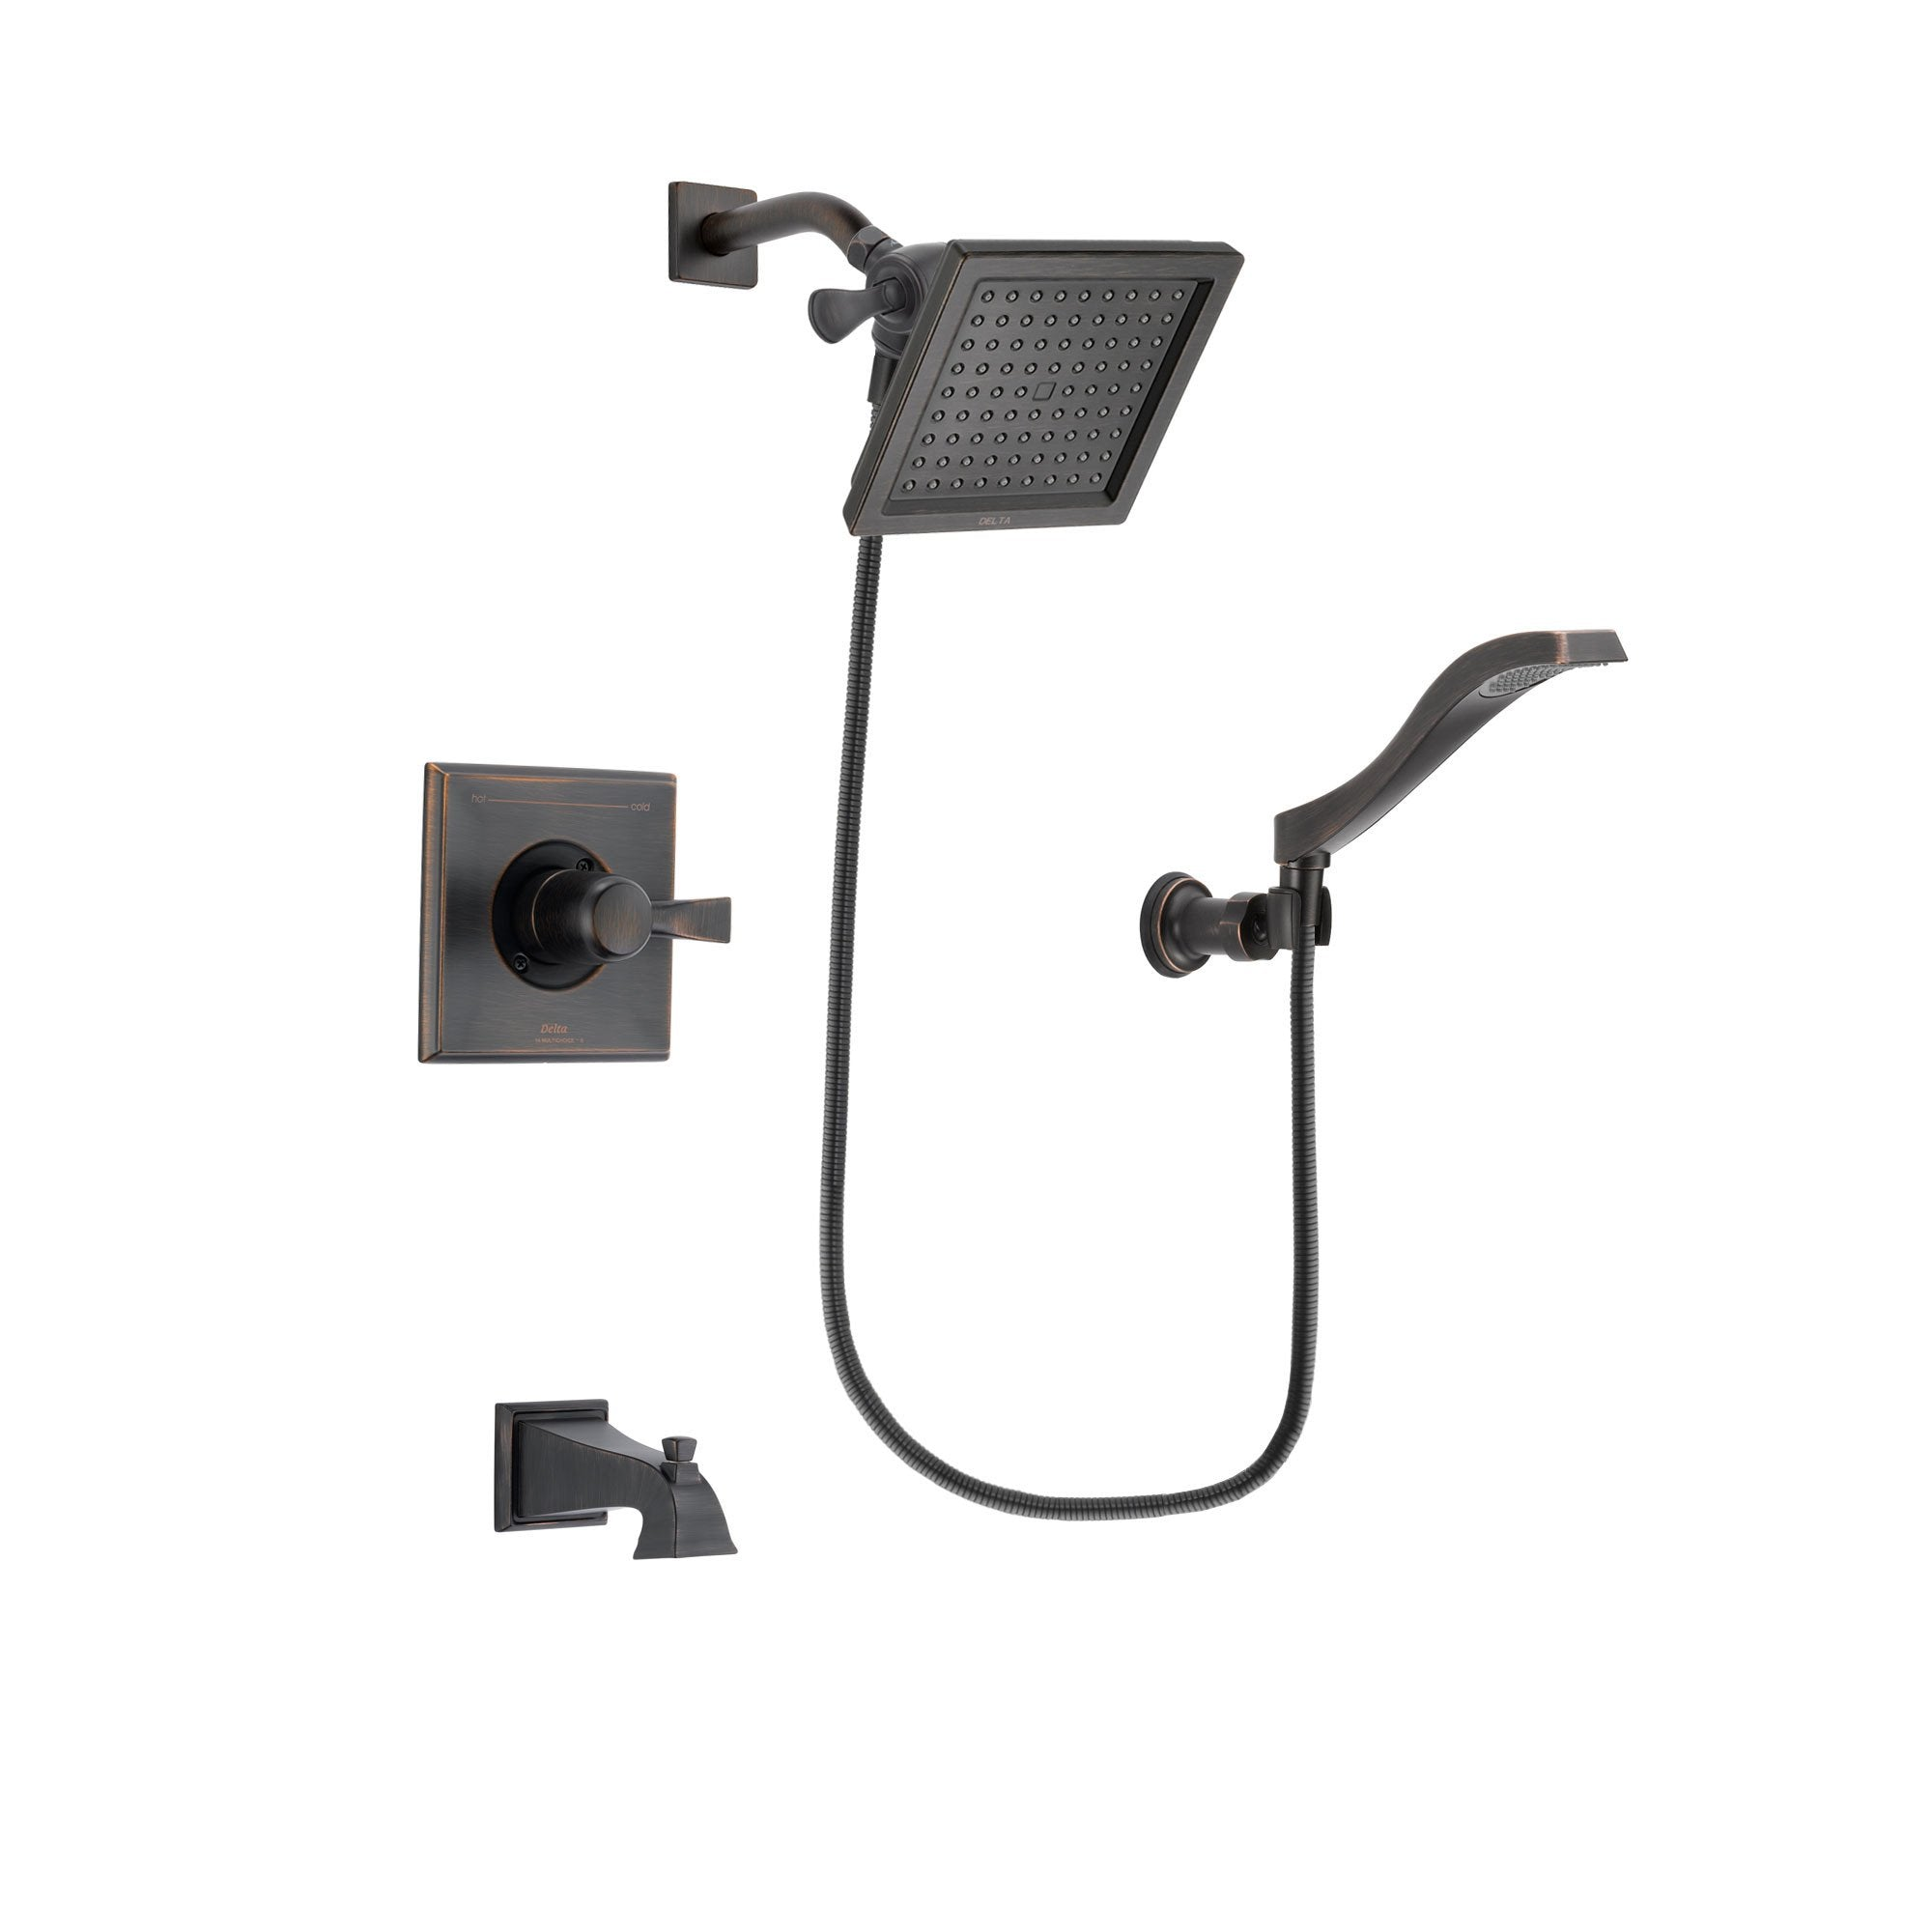 Delta Dryden Venetian Bronze Tub and Shower Faucet System w/Hand Shower DSP3225V